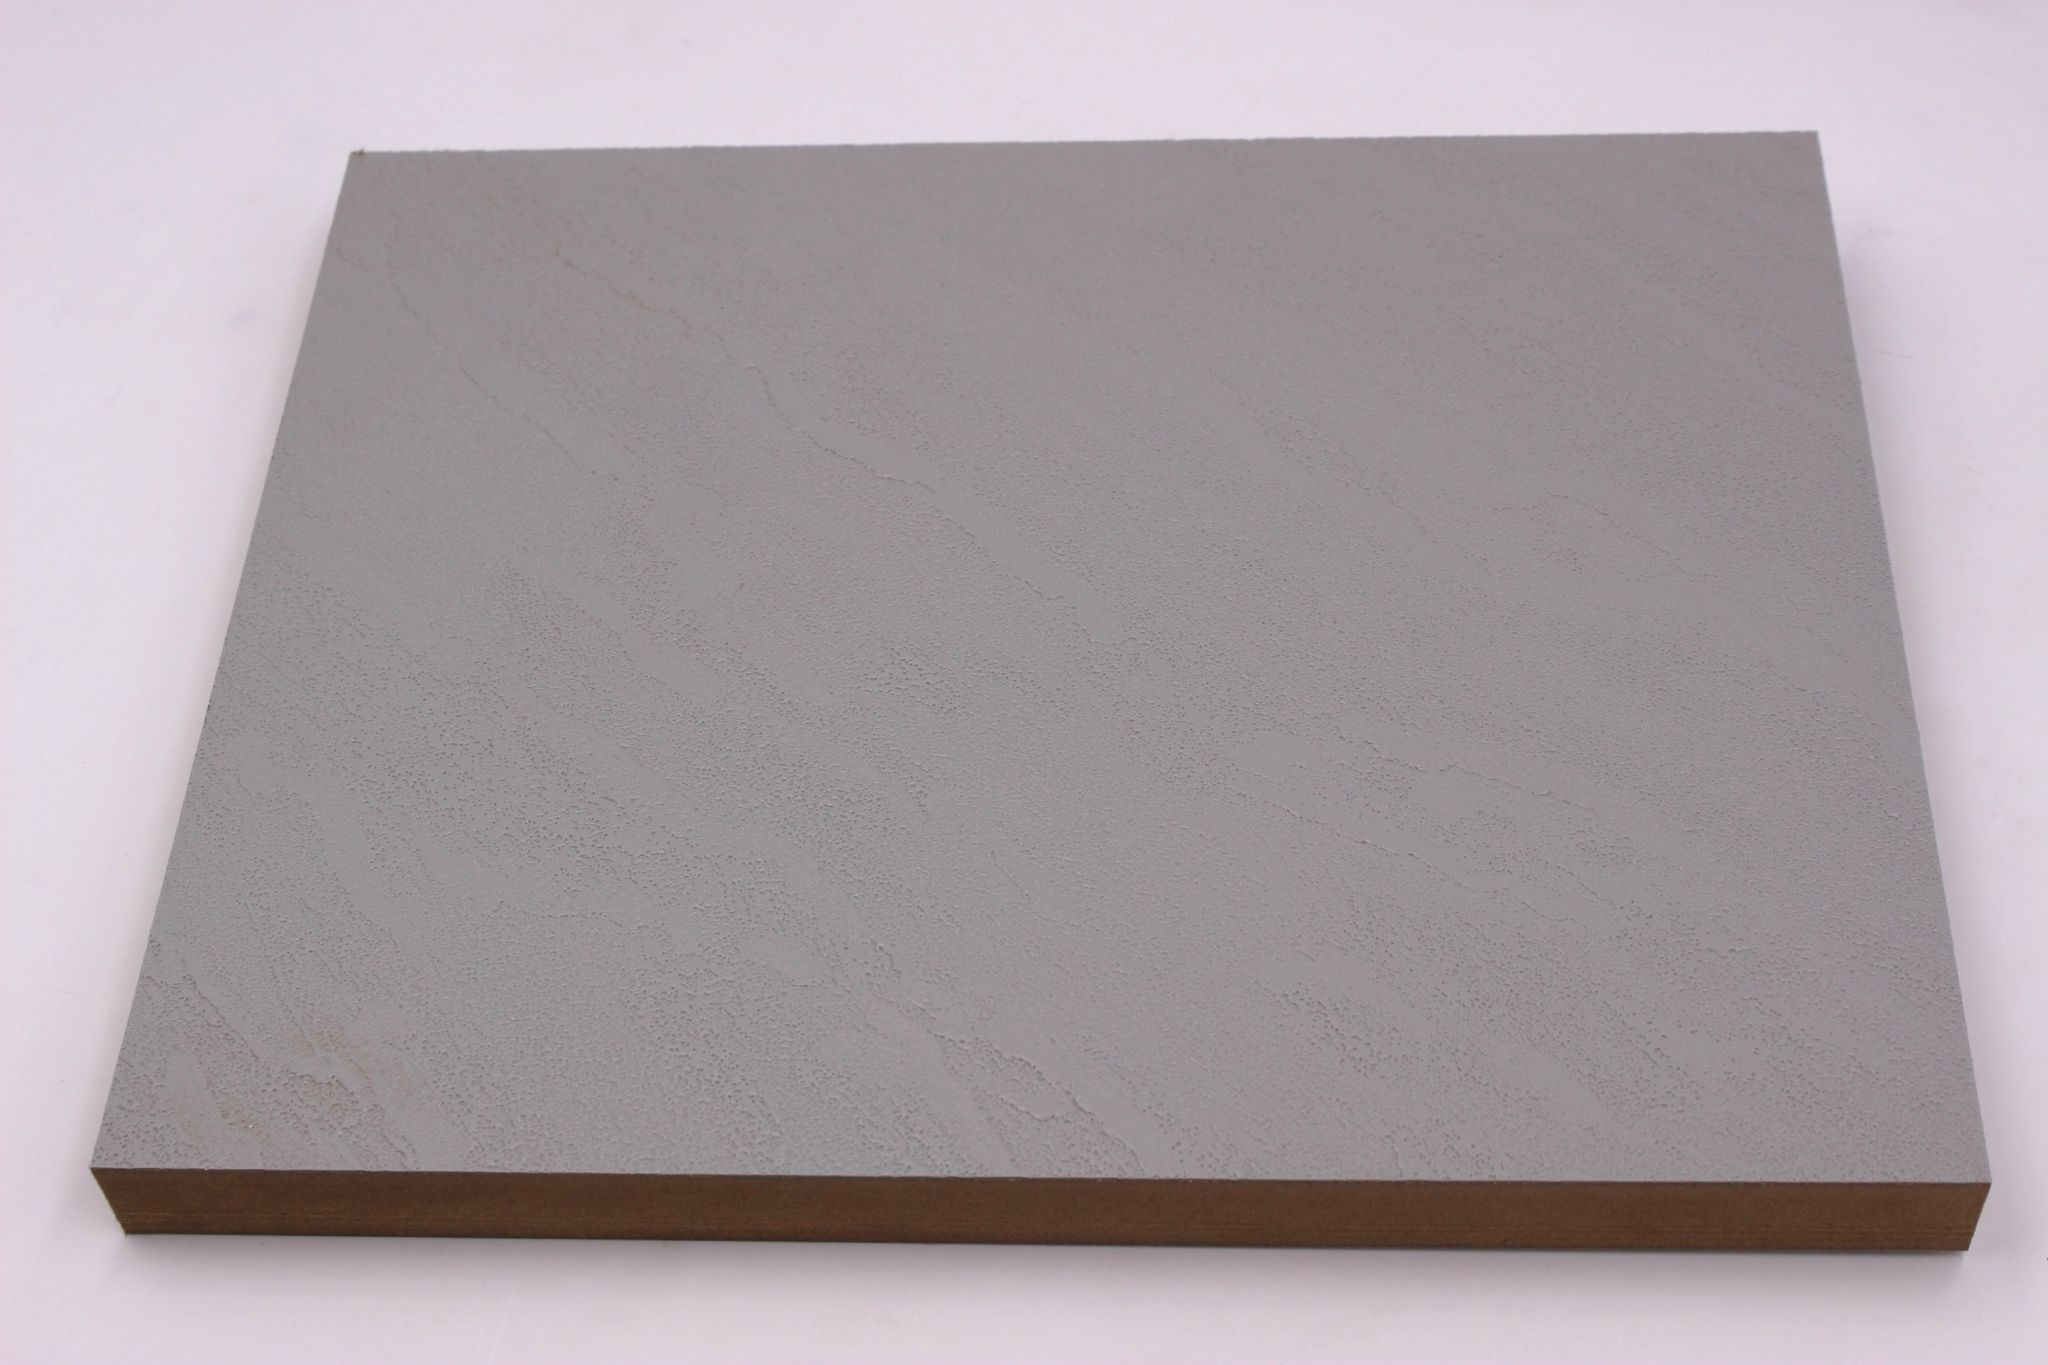 Core High Quality Melamine Mdf Particle Board Or Plywood Back White Matching Color Melaine Same Color Pet Sheet Pets Cool Stuff Paneling Particle Board